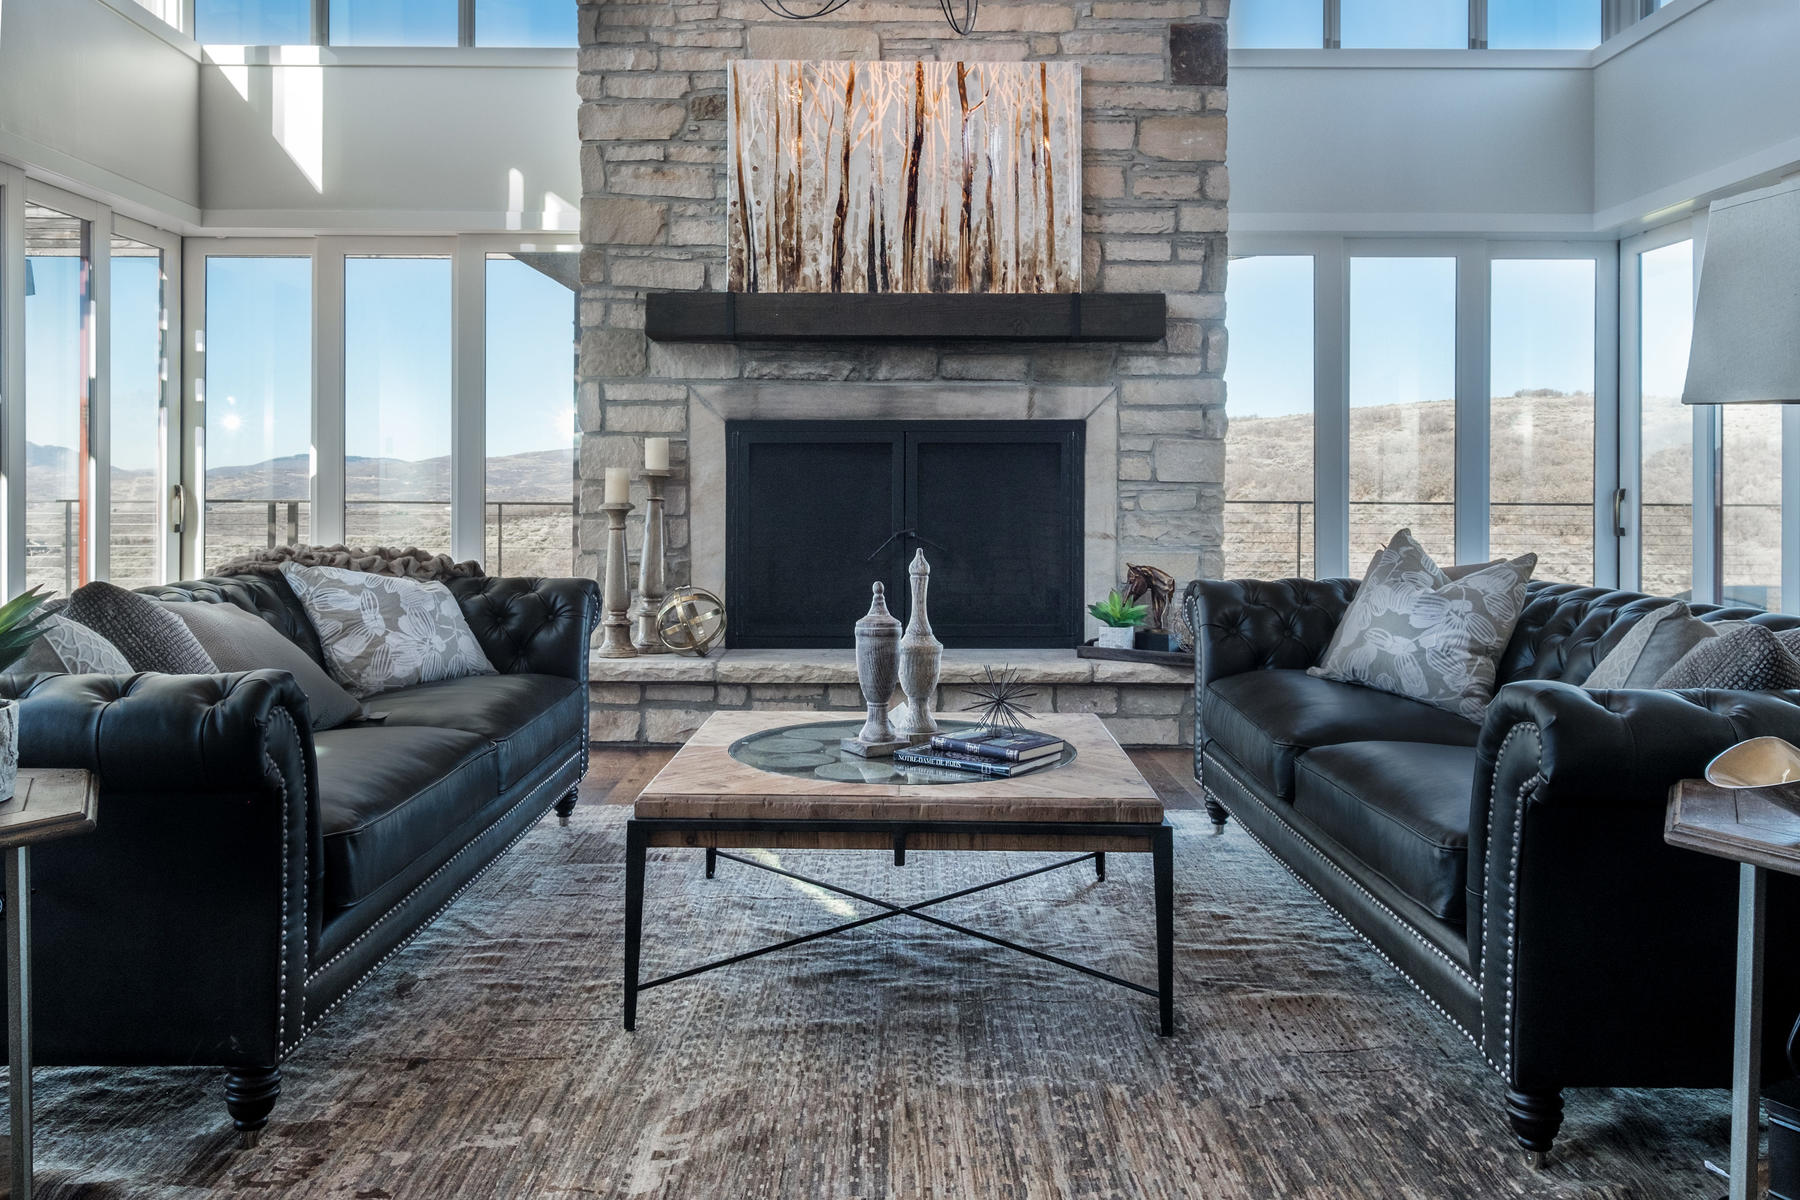 Single Family Home for Sale at Best Views in Promontory, One of Clive Bridgwater's Finest 8293 N Ranch Garden Rd Park City, Utah 84098 United States